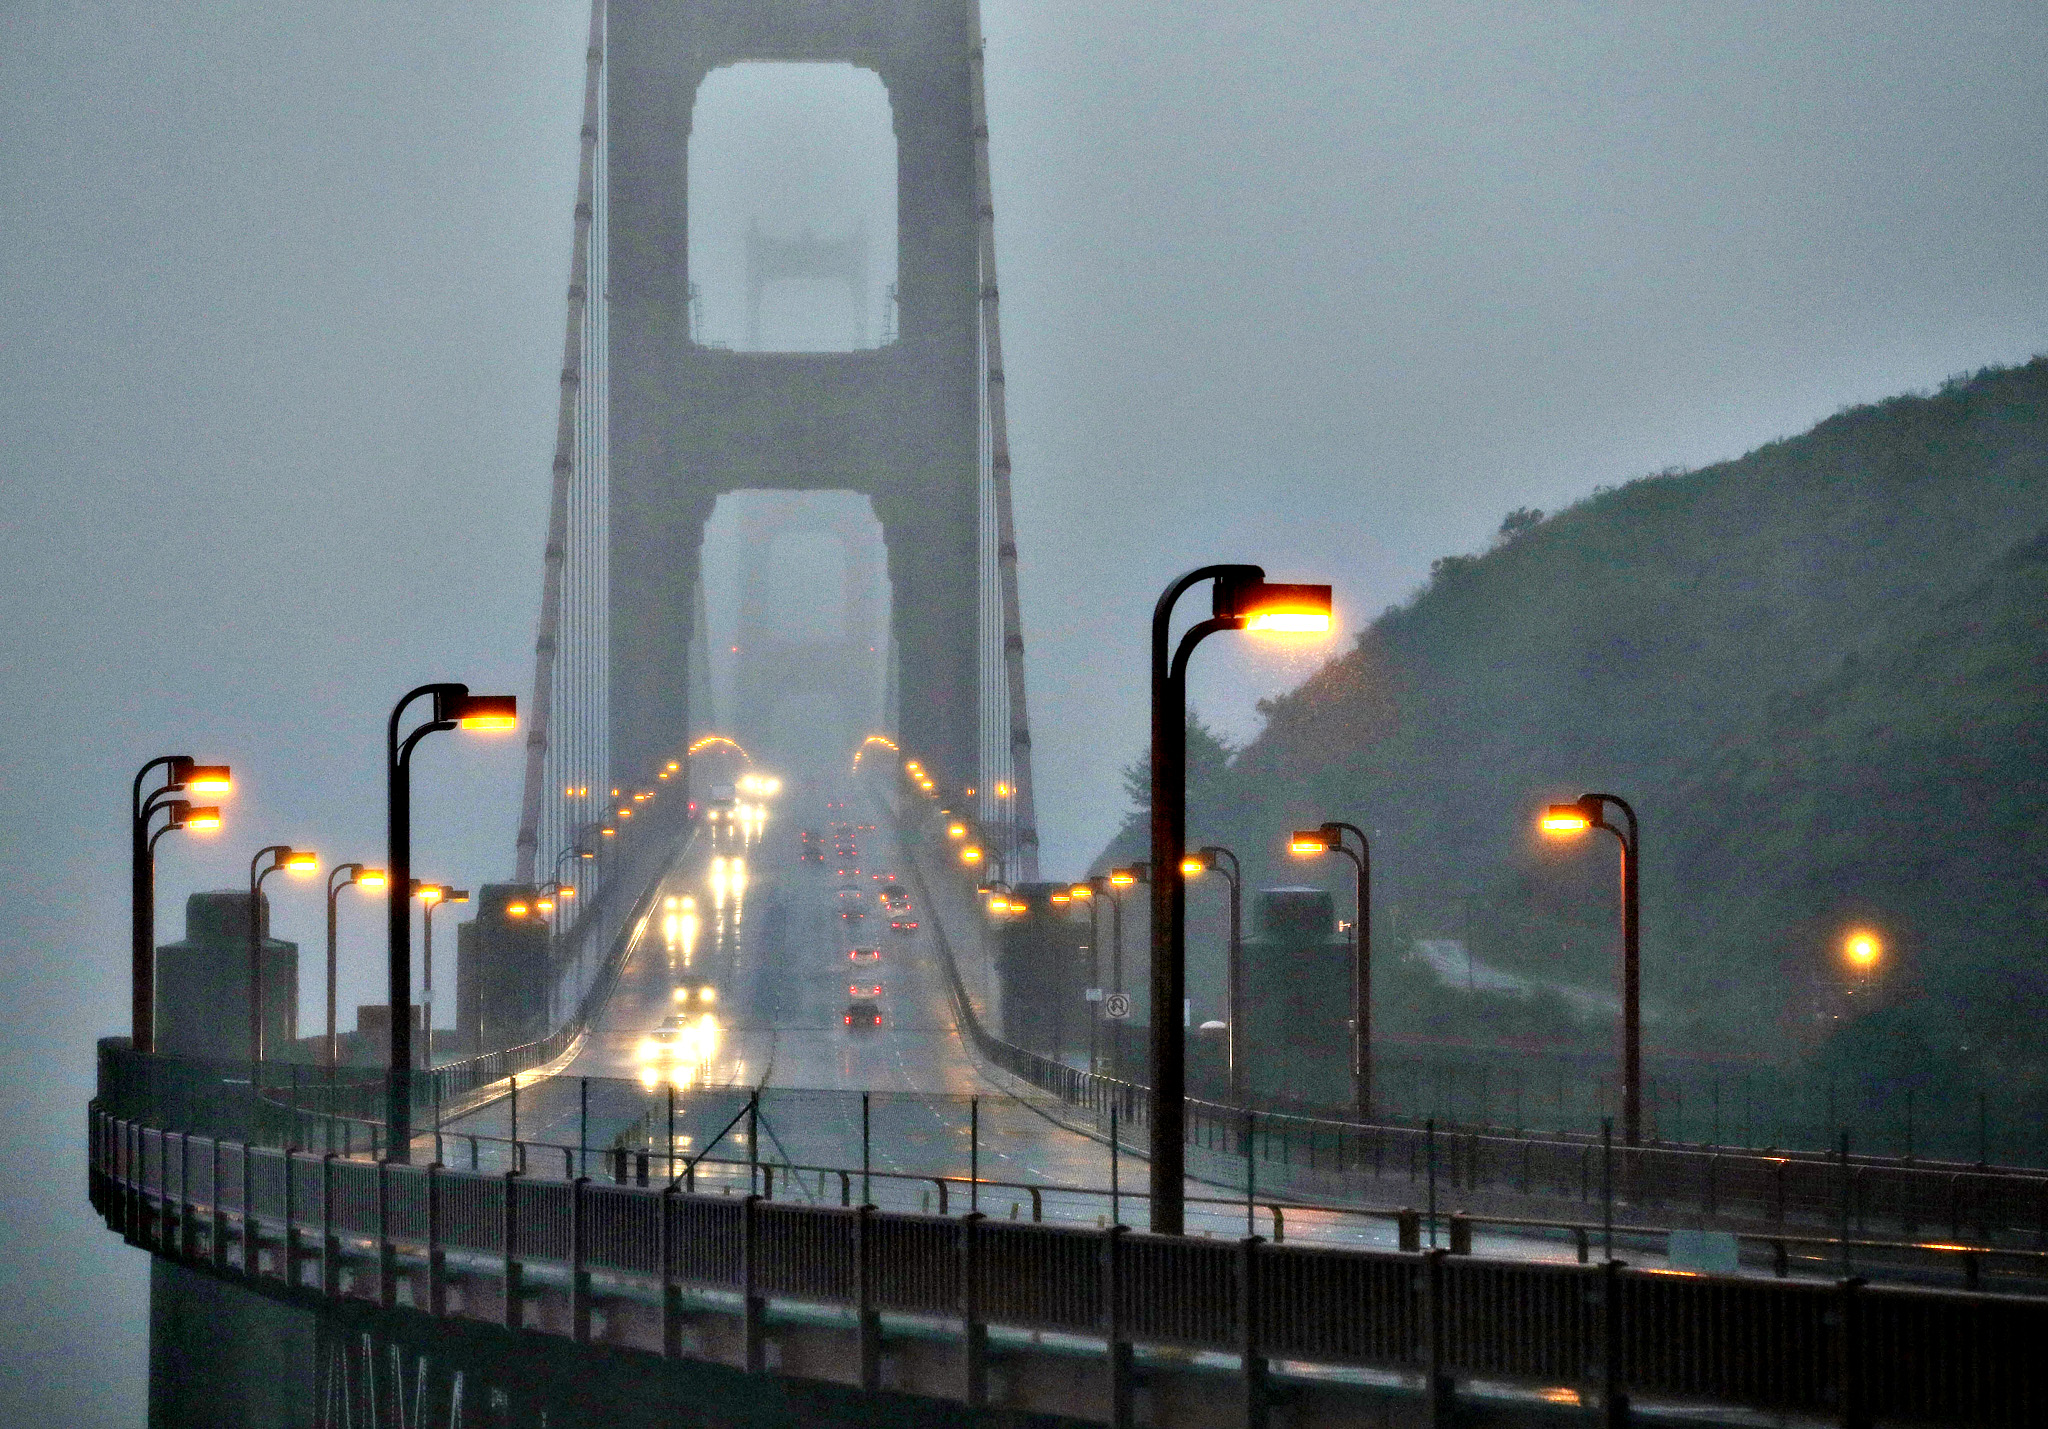 Traffic moves slowly across the Golden Gate Bridge in the high winds and rain Thursday, Dec. 11, 2014, in this view from Sausalito, Calif.  A storm expected to be one of the windiest and rainiest in five years swept across the San Francisco Bay Area on Thursday, knocking out power to tens to thousands and delaying travel by air, train and ferry. Pacific Gas & Electric is reporting outages are widespread across the Bay Area due to weather, but officials weren't immediately available to give a specific number of outages.